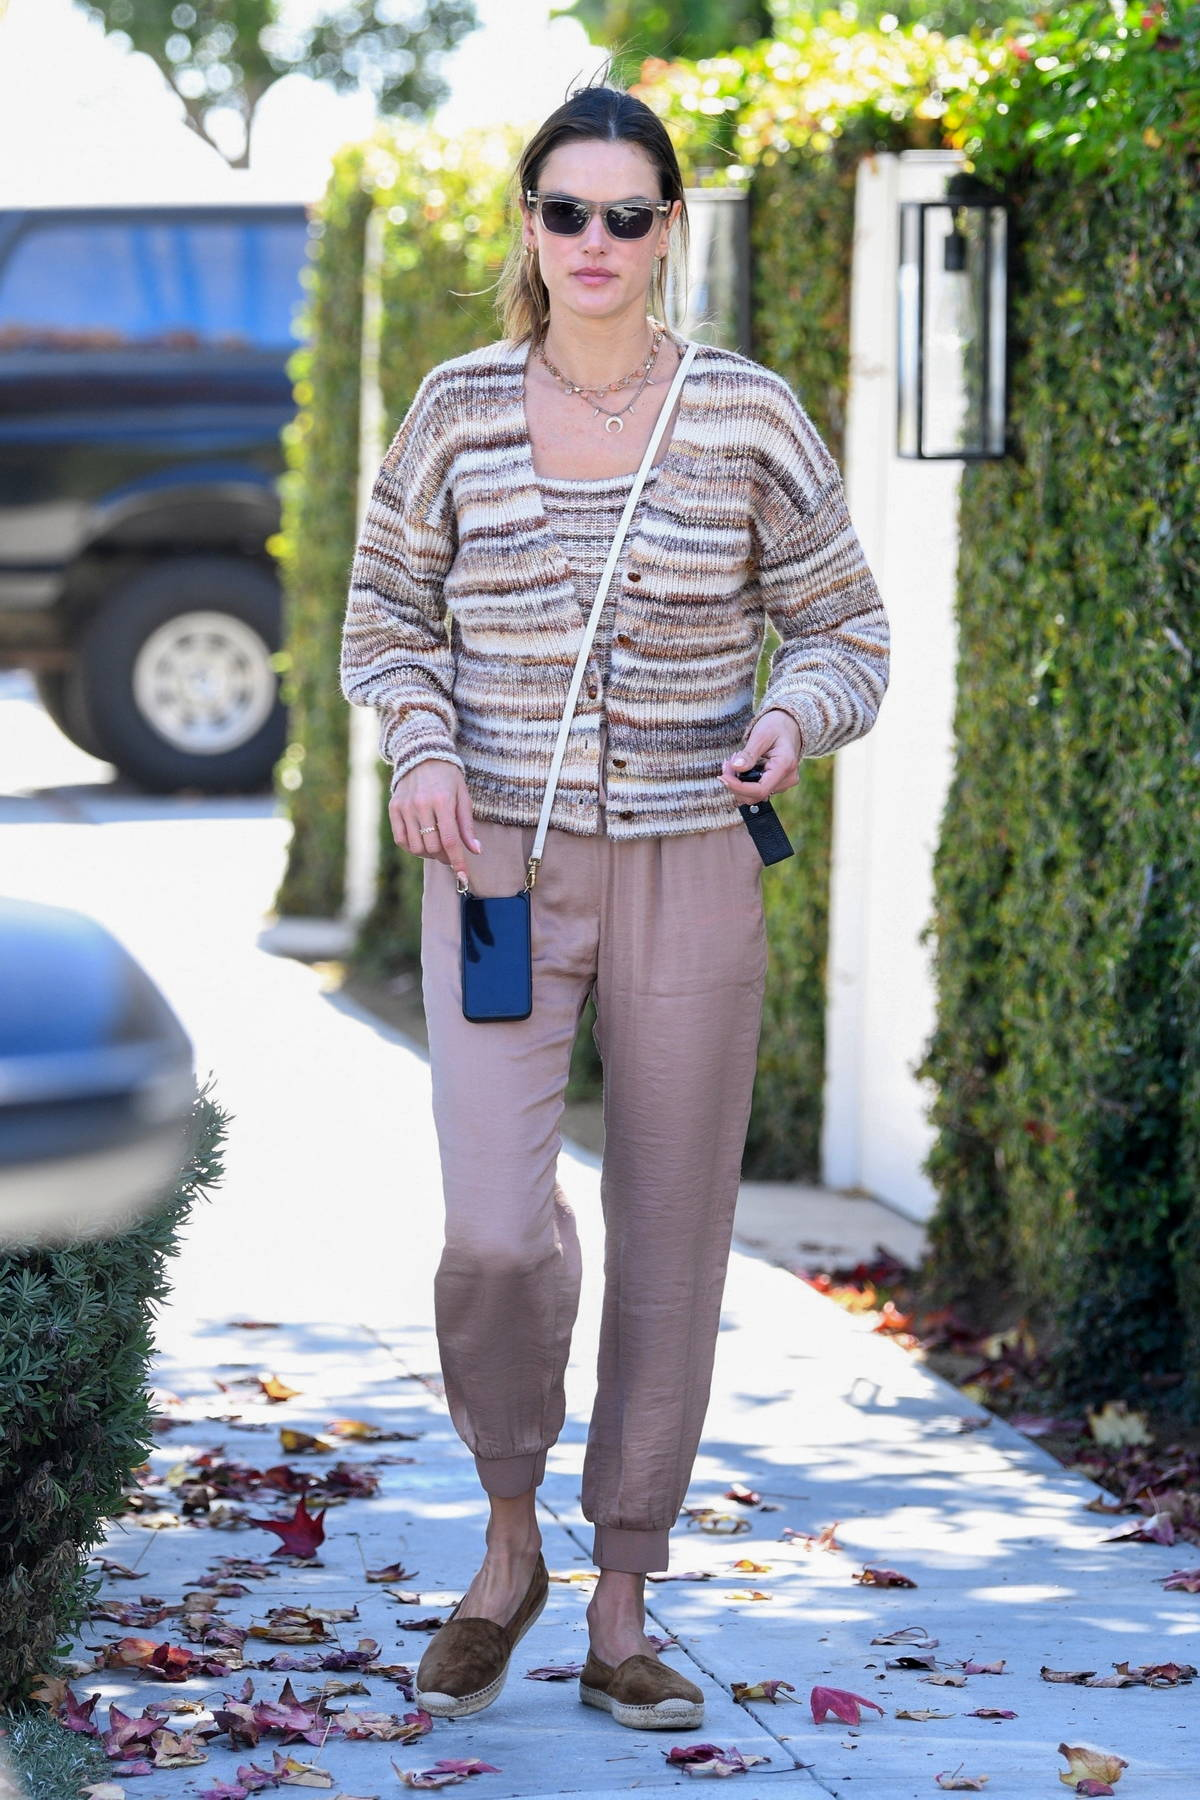 Alessandra Ambrosio keeps things casual while out shopping for a gift in Brentwood, California